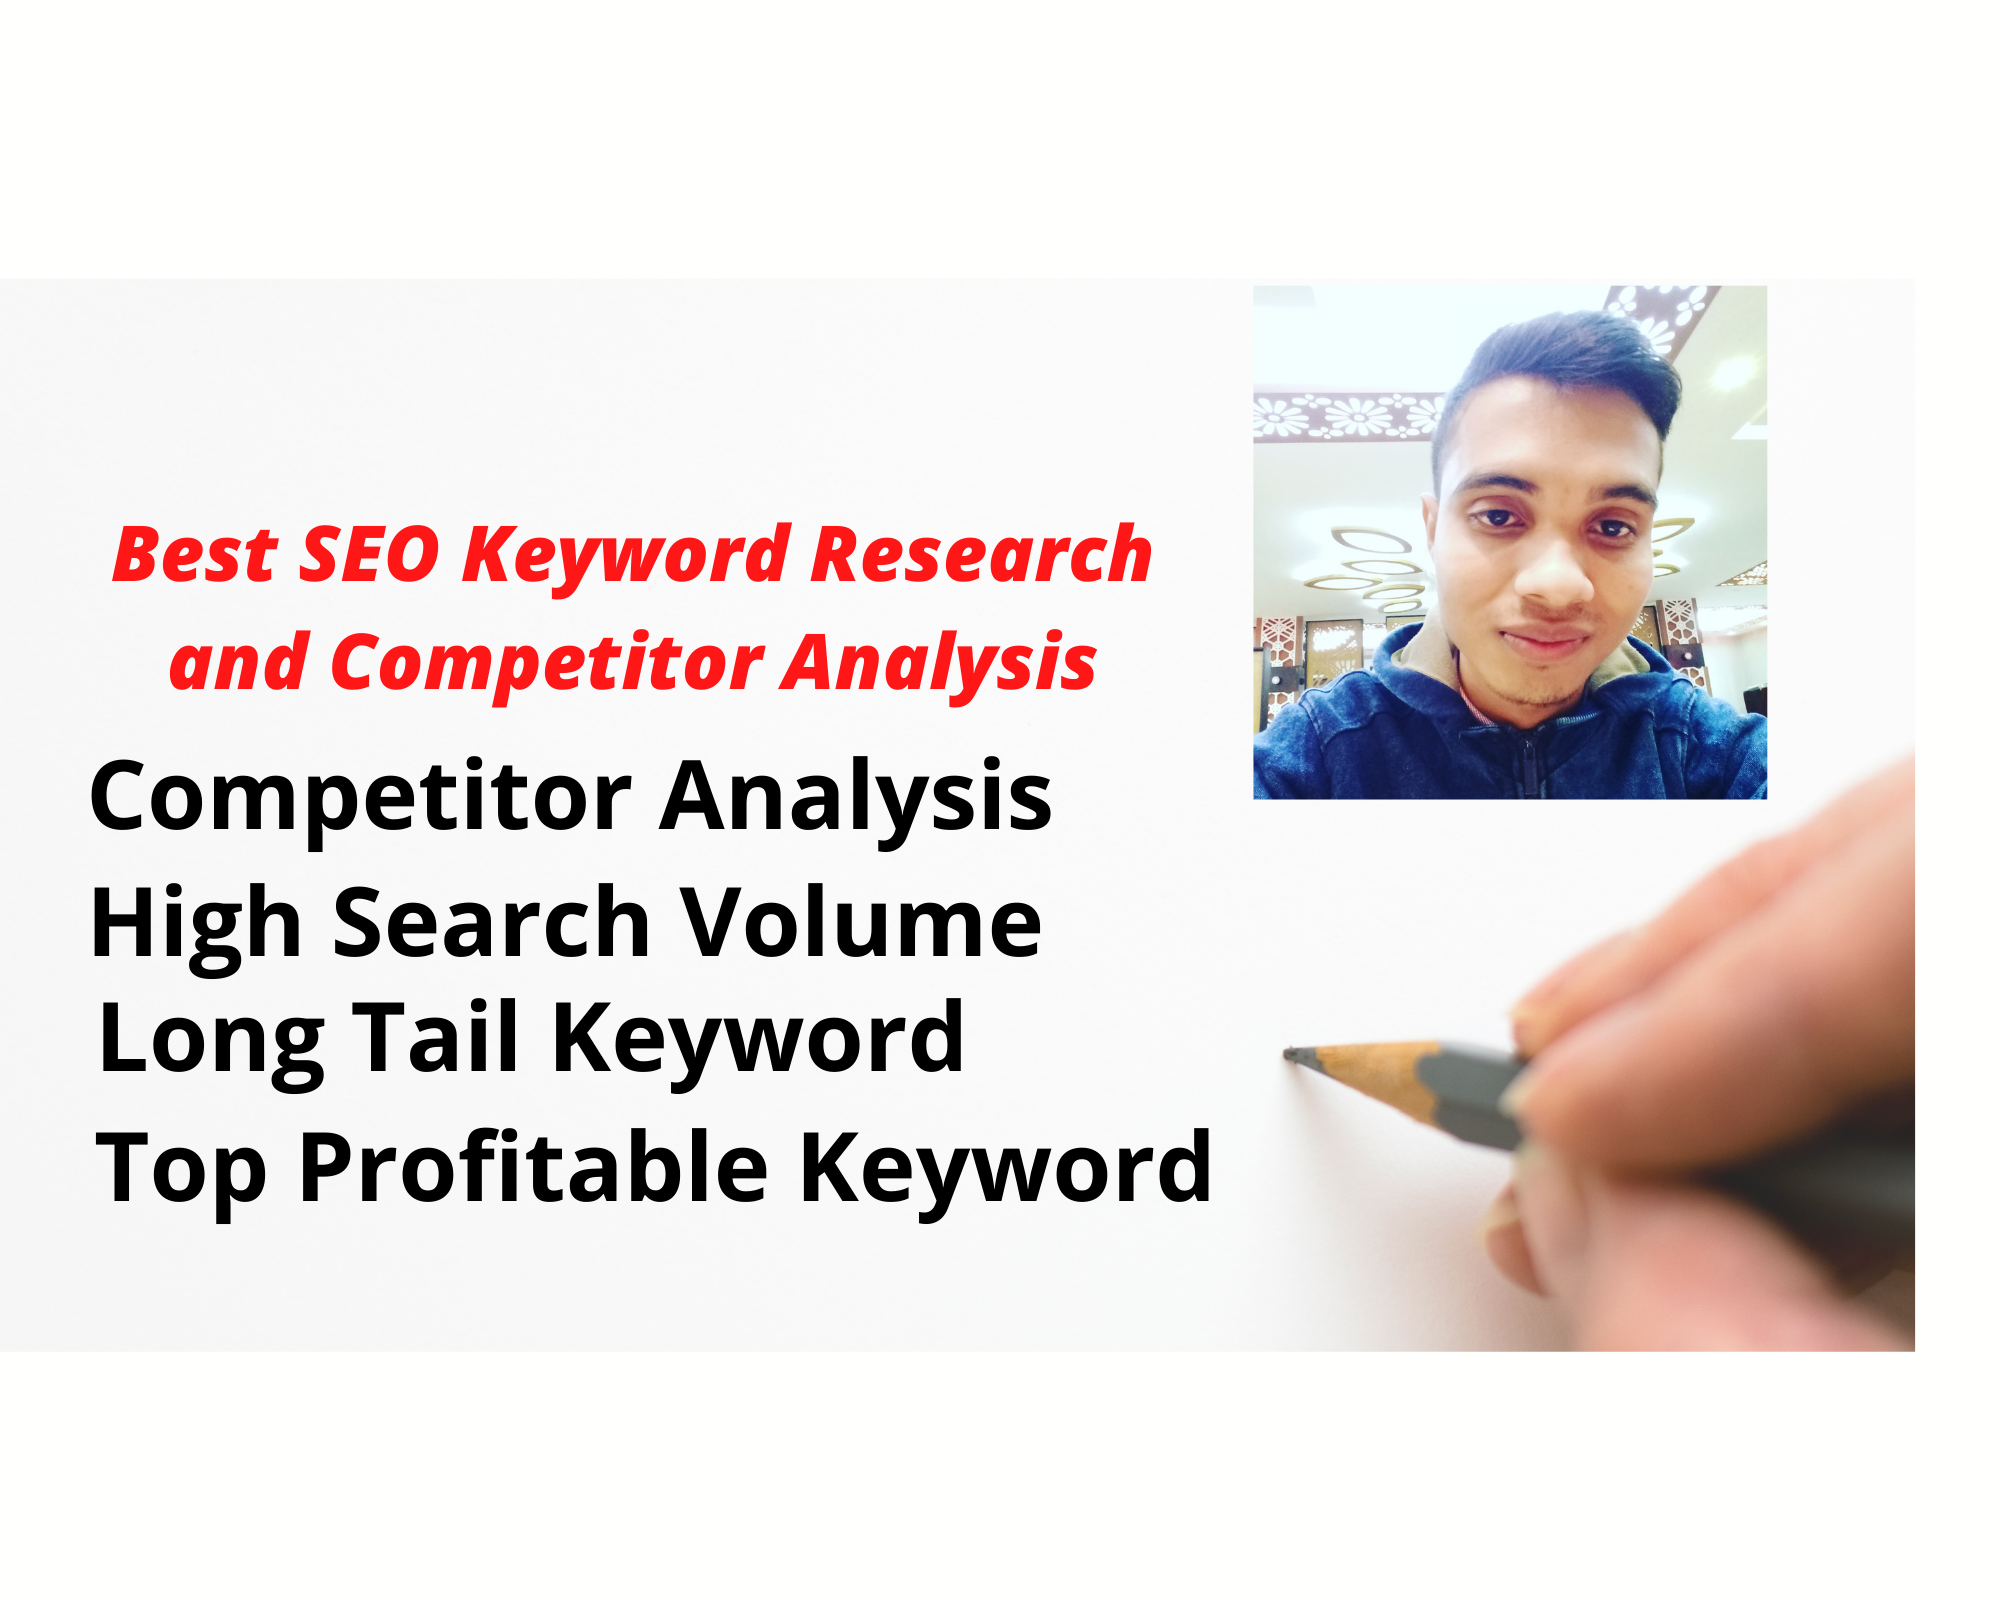 I do Best SEO keyword research and competitor analysis